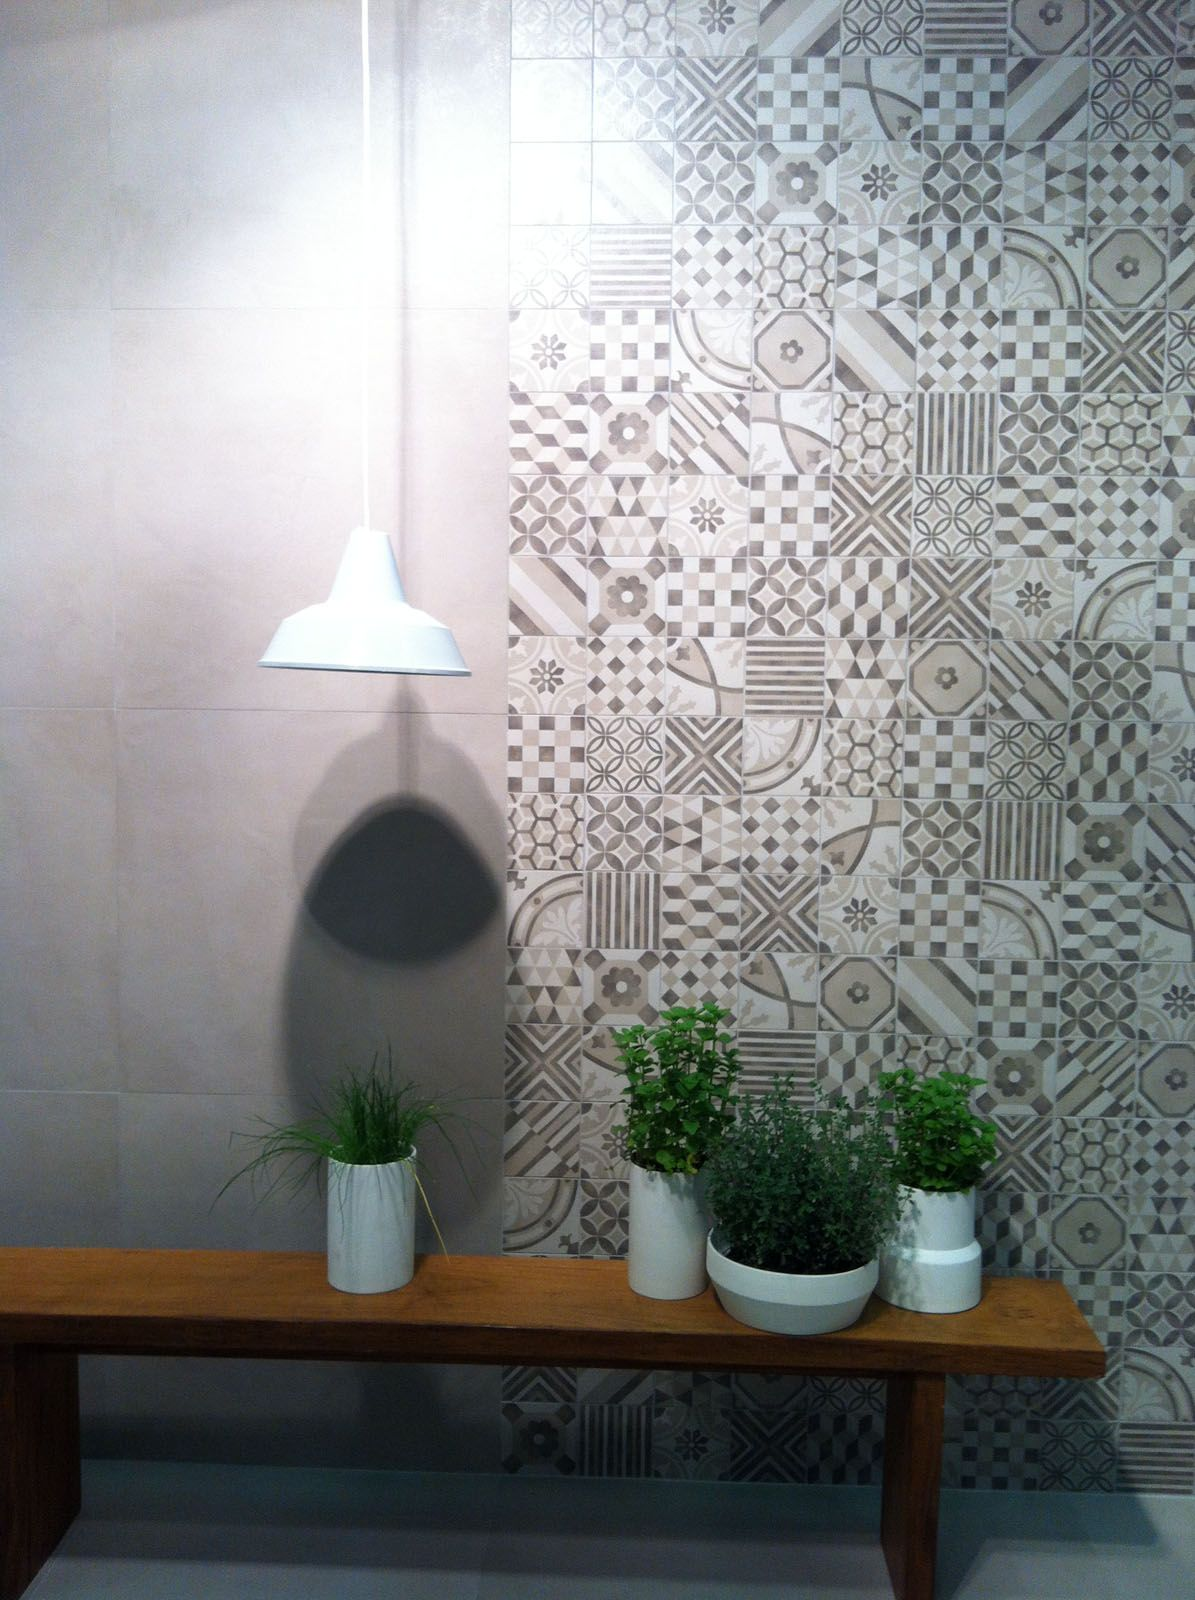 marazzi _ tile effect of resin block collection by marazzi left of the image on